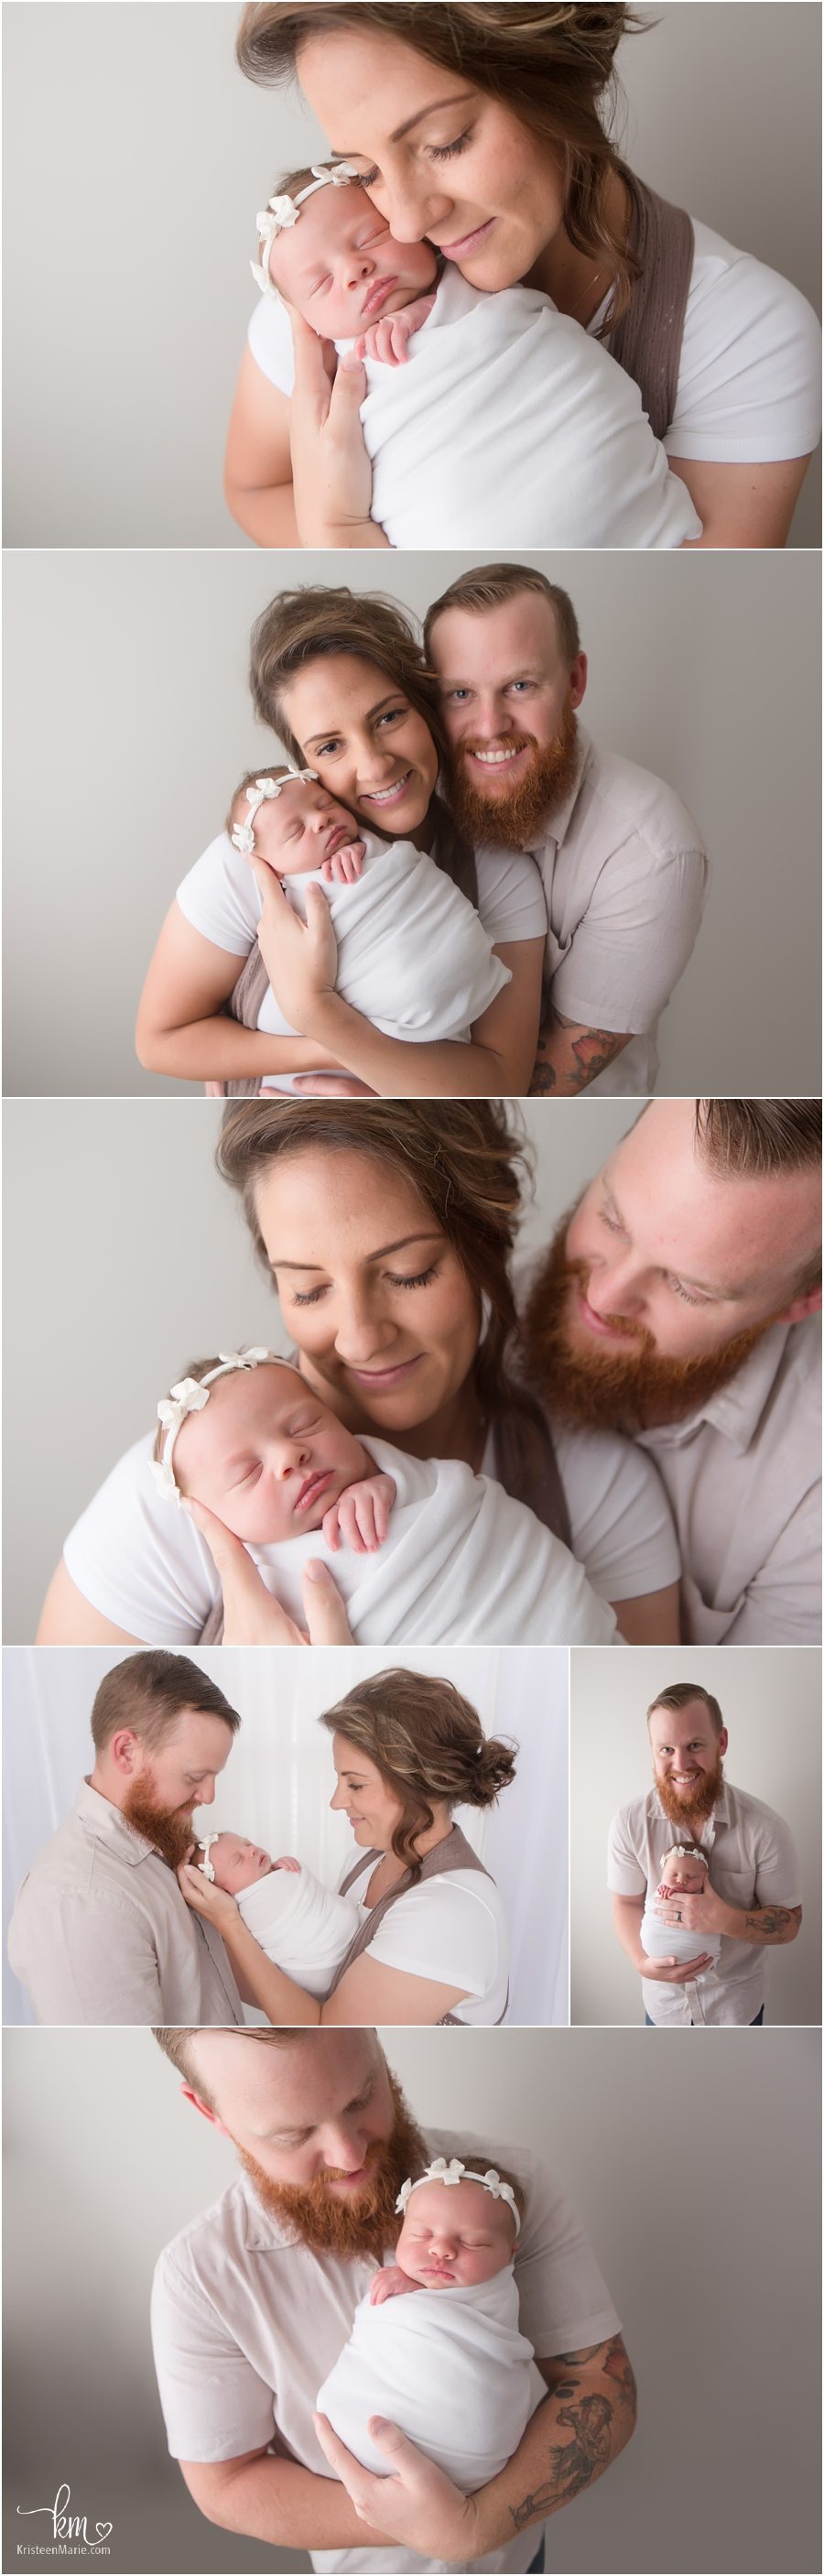 parent poses with newborn baby girl